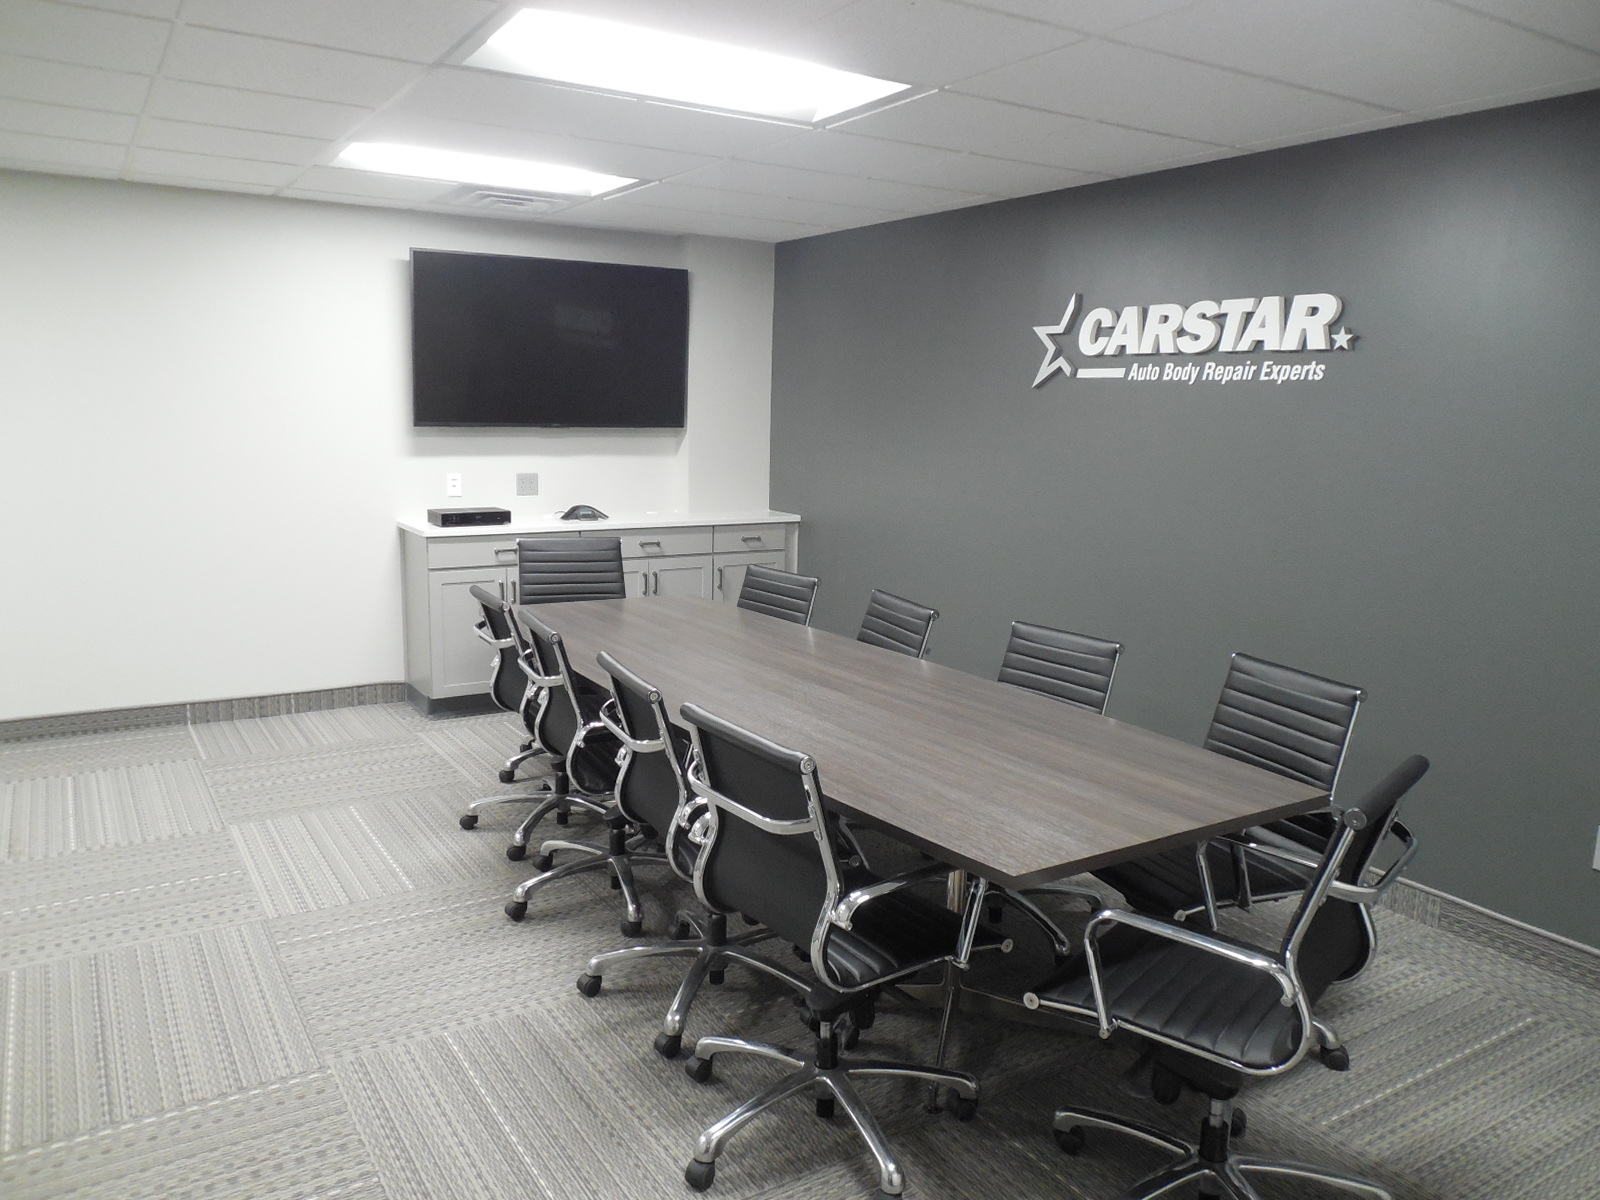 CARSTAR West Seneca - Conference Room